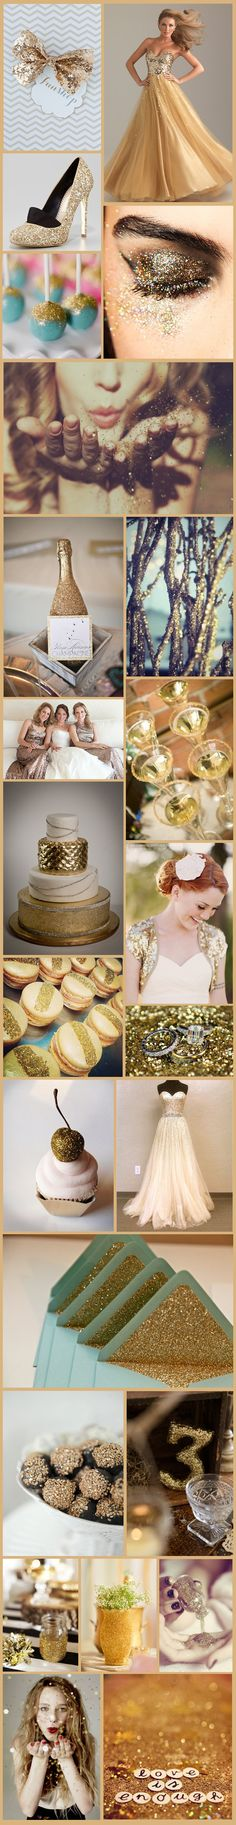 Wedding Inspiration: All That Glitters Is Gold